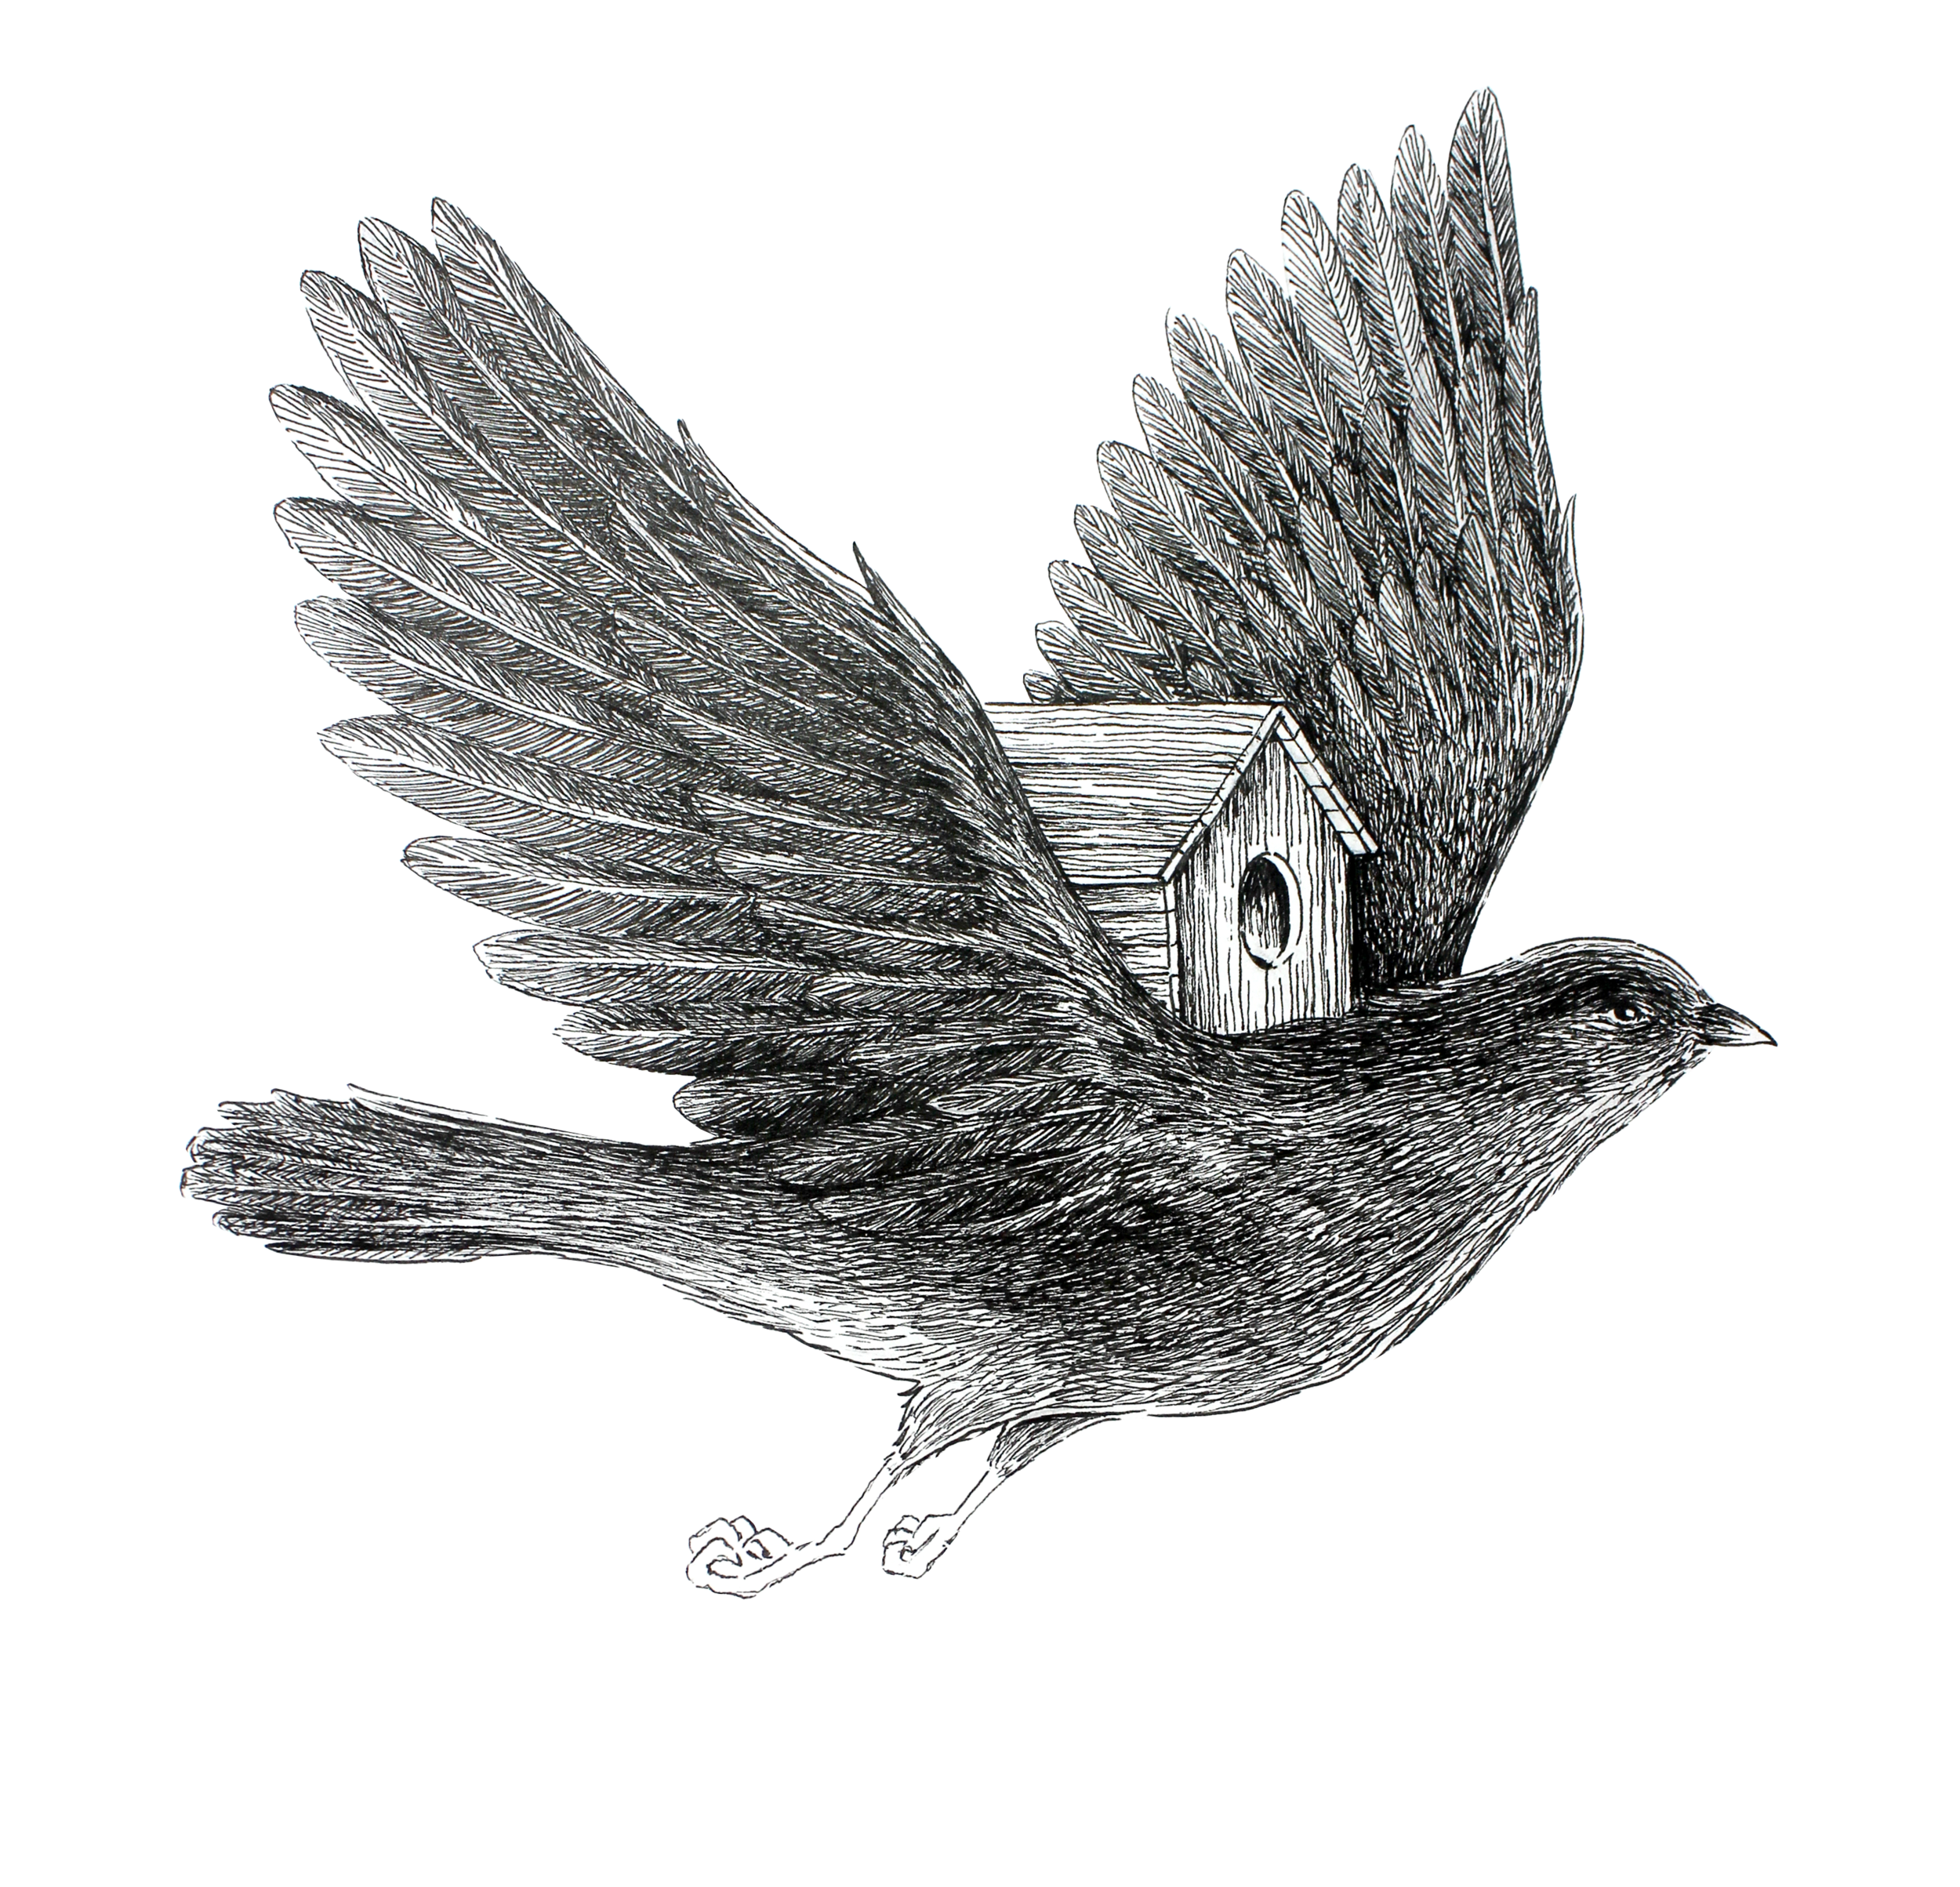 birdhouse2.png